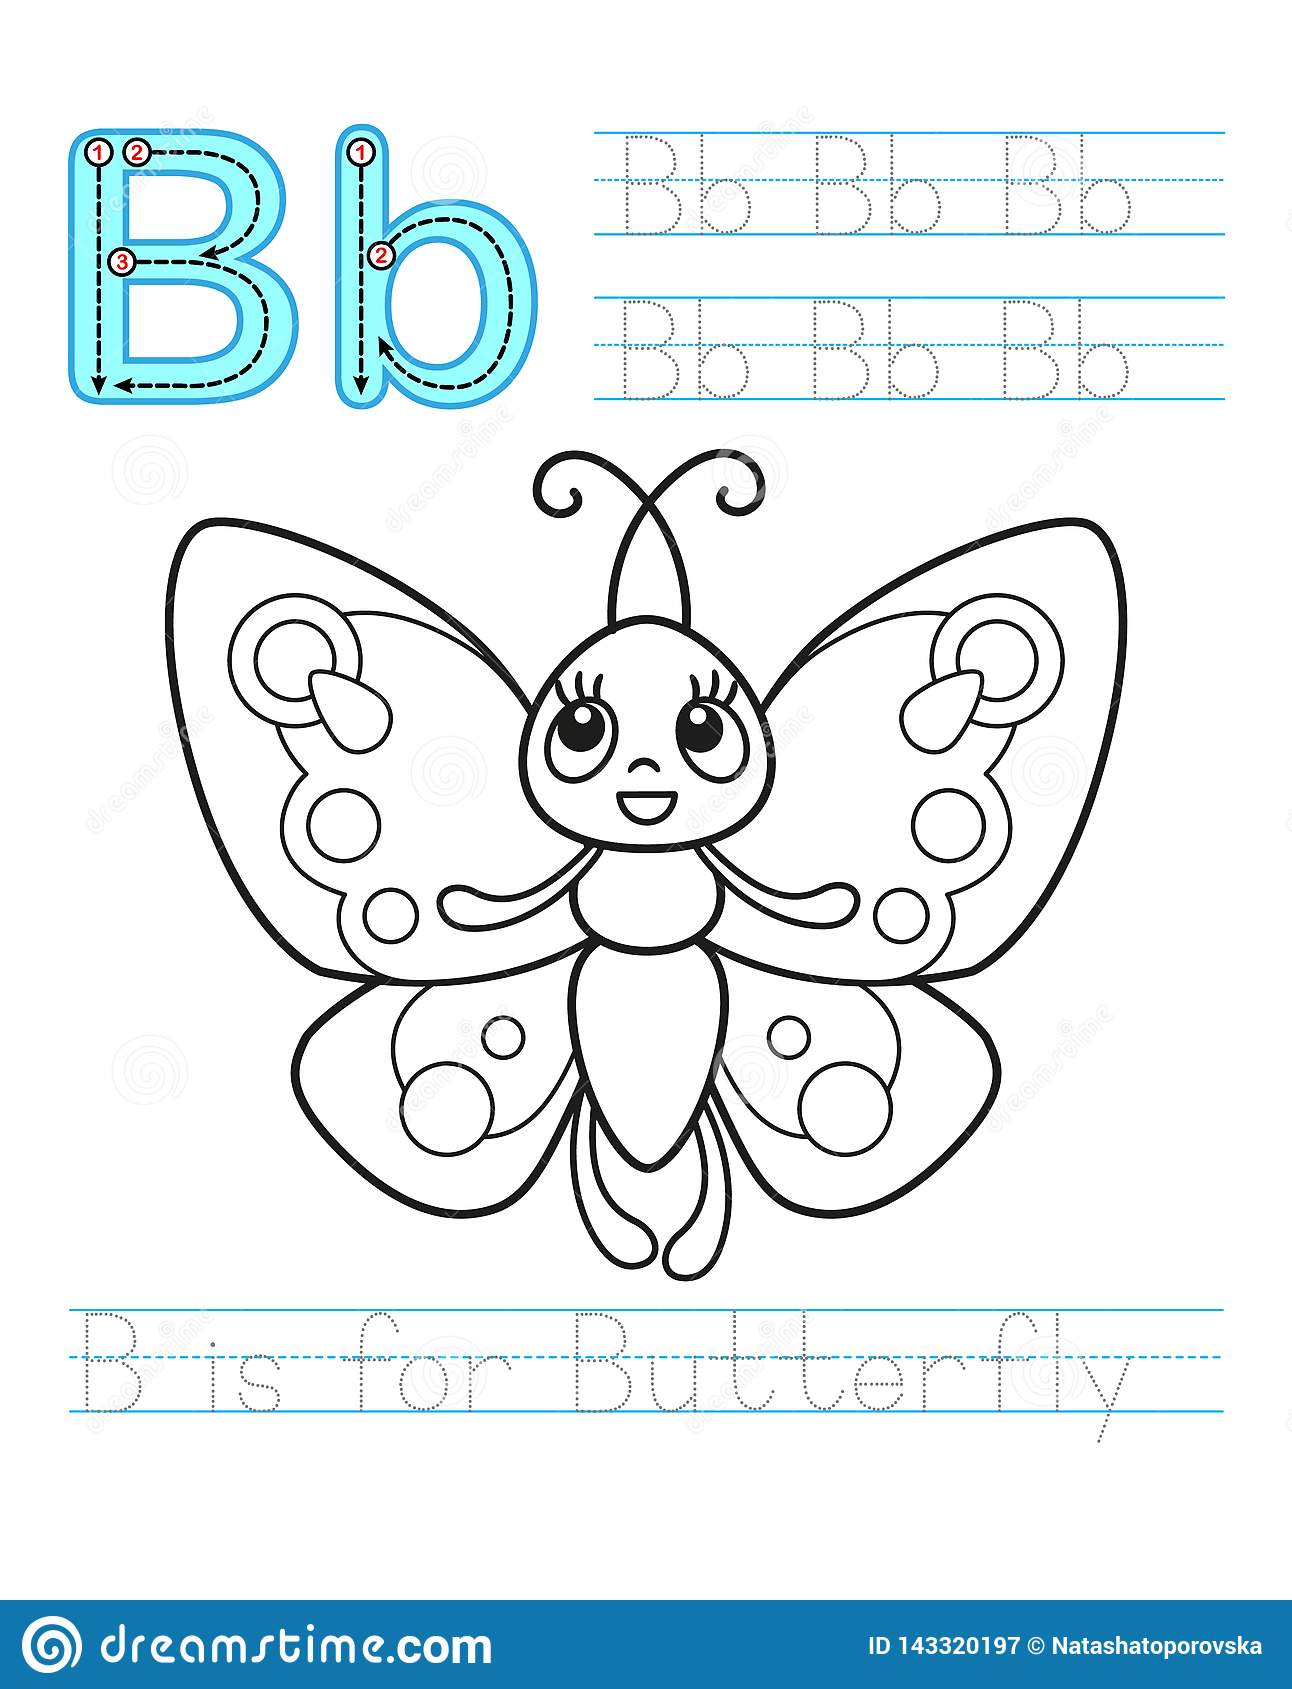 Coloring Book Page. Printable Worksheet For Kindergarten And ...